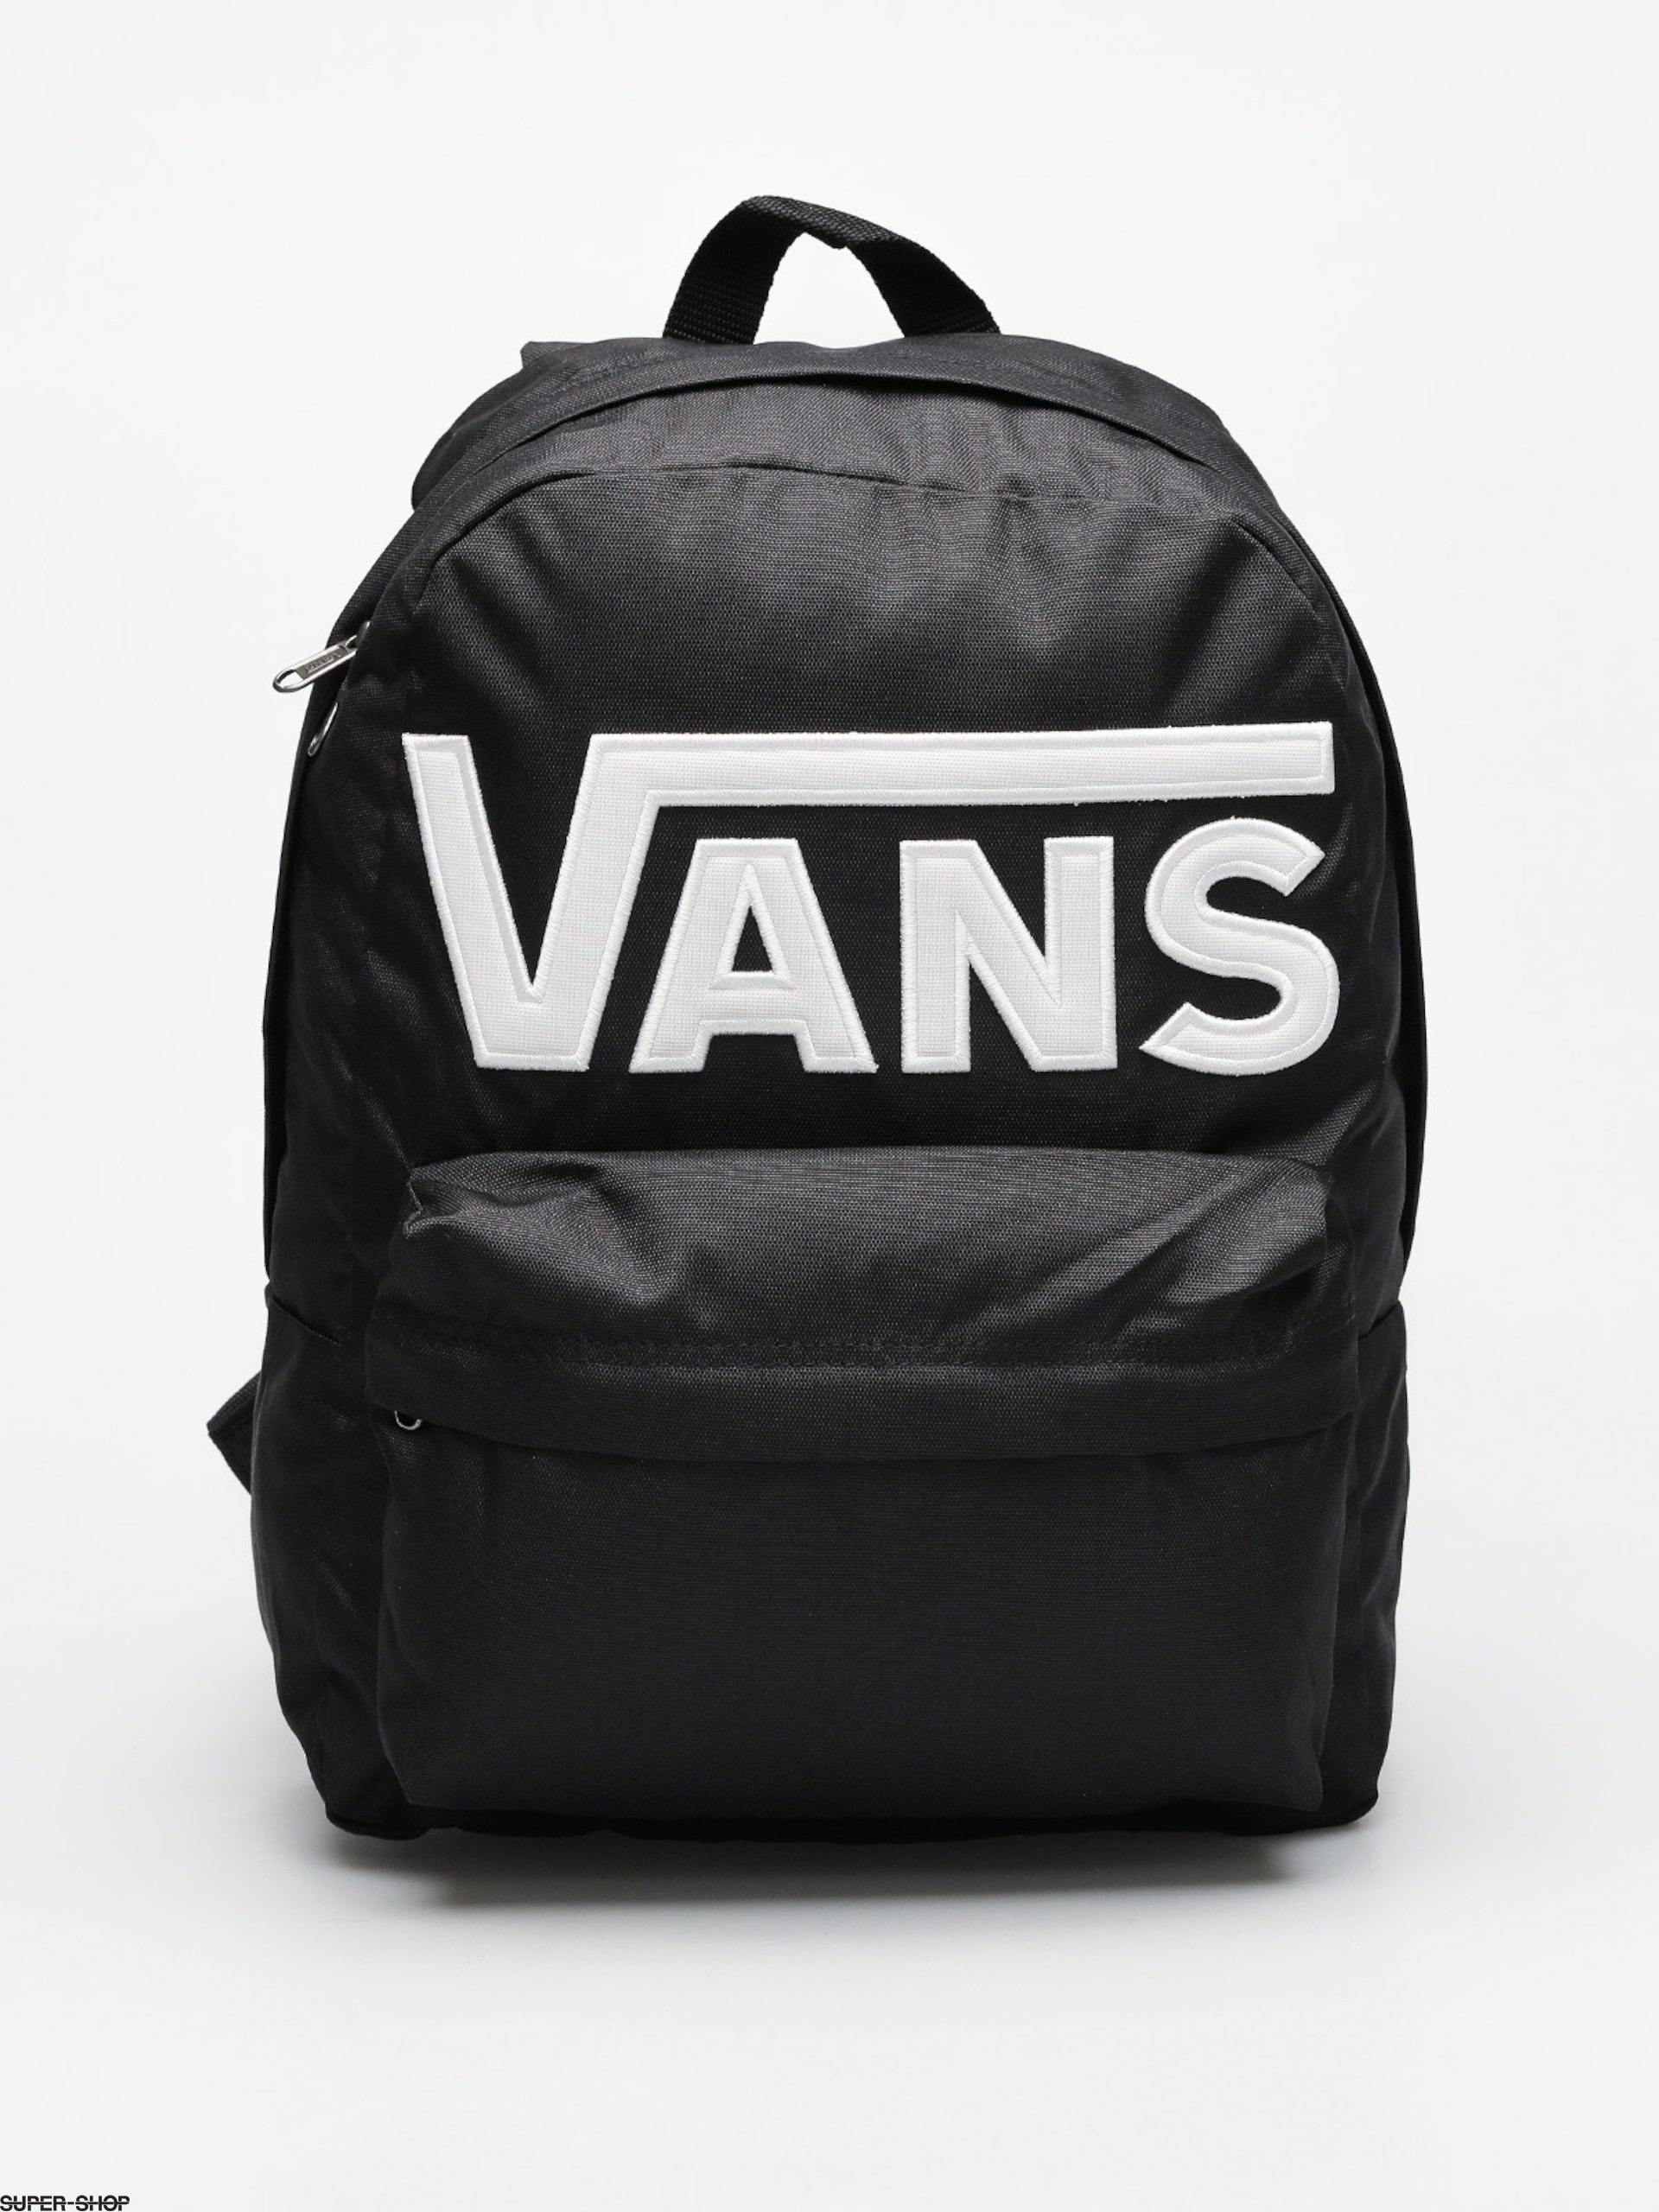 99de073693 964106-w1920-vans-backpack-old-skool-ii-black-white.jpg